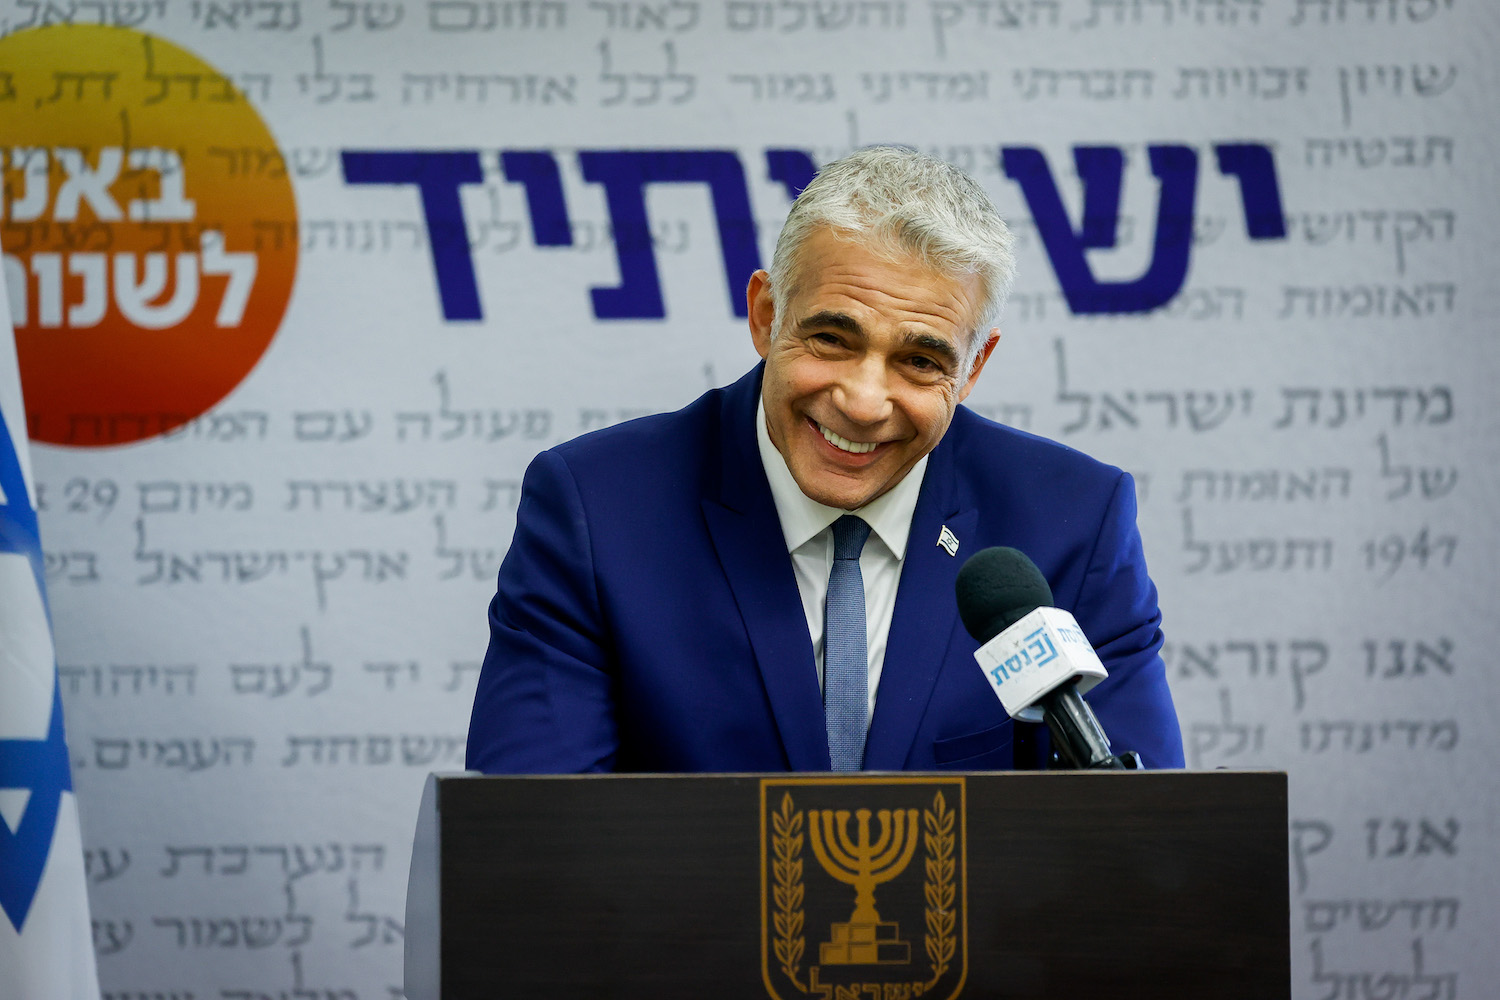 Head of the Yesh Atid party Yair Lapid speaks during a faction meeting at the Knesset, May 10, 2021. (Yonatan Sindel/Flash90)